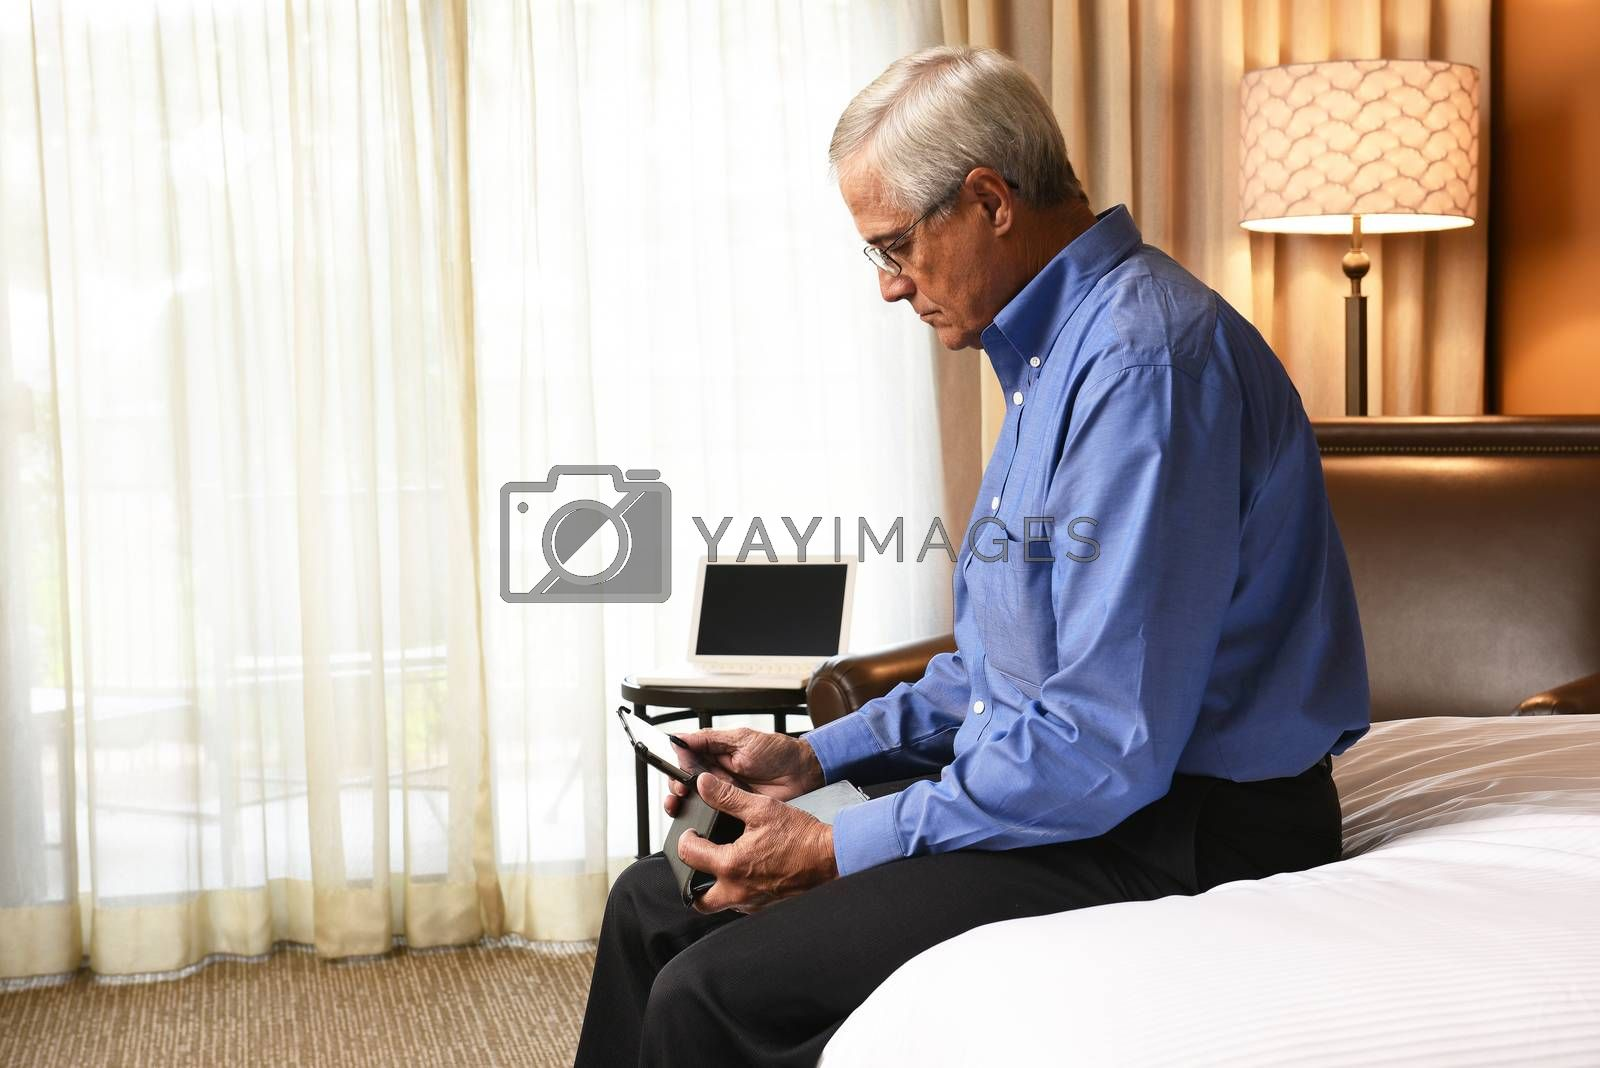 A senior businessman seated on the end of the bed his hotel room while using a tablet computer.